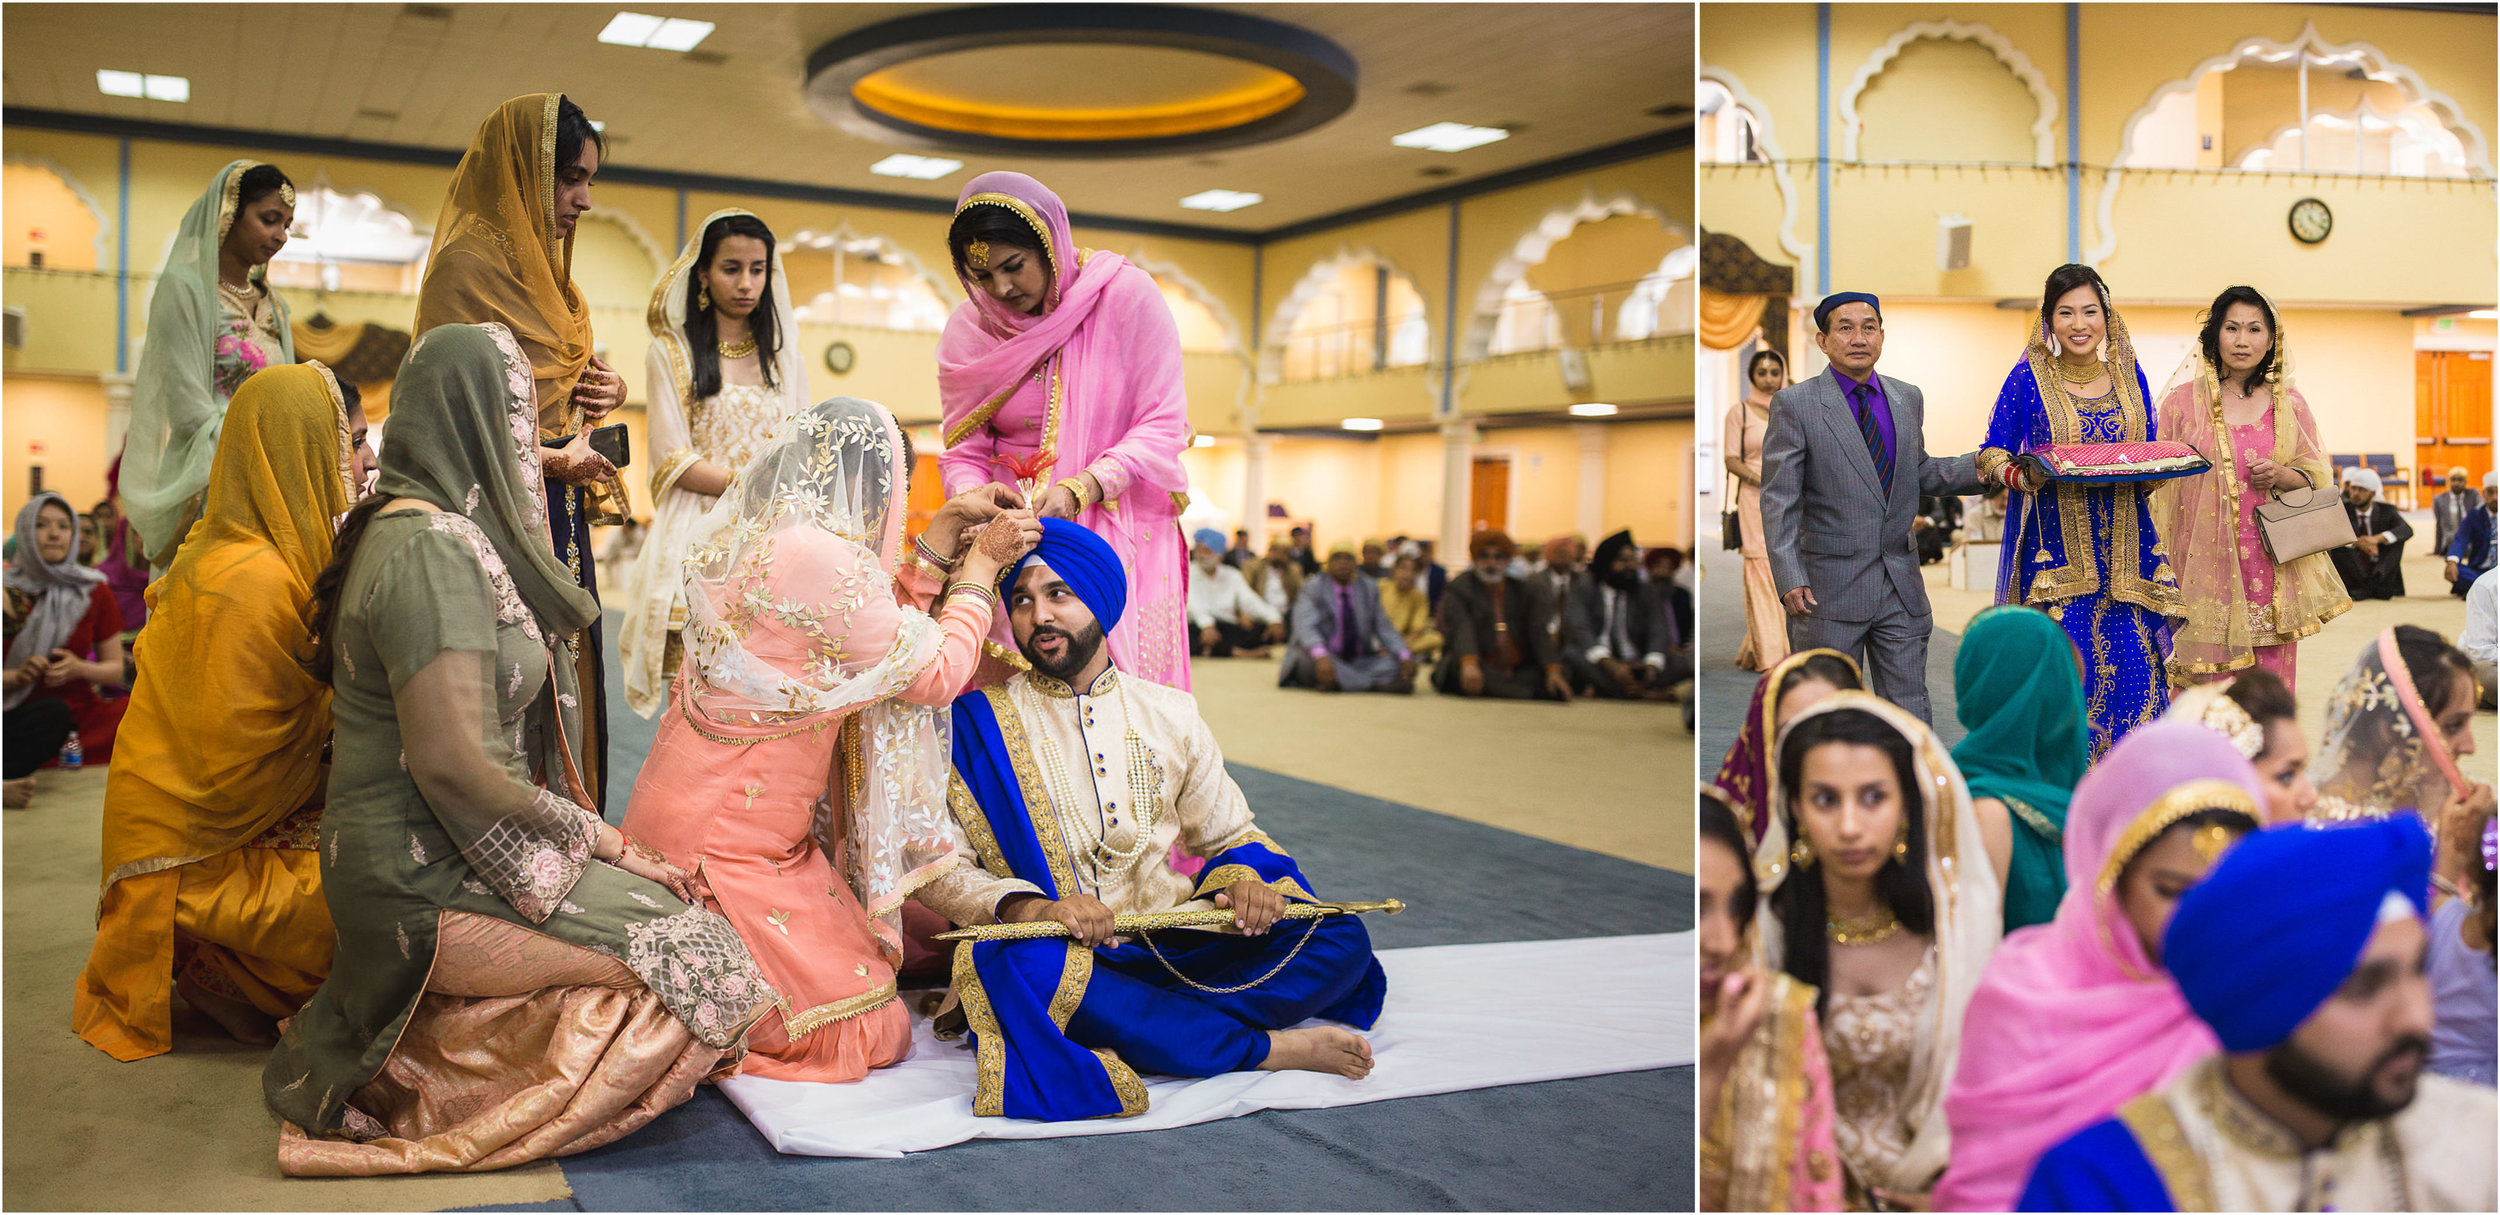 Amanda and Baldeep finally get to see each other at the Anand Karaj, which is the actual union ceremony between the two.